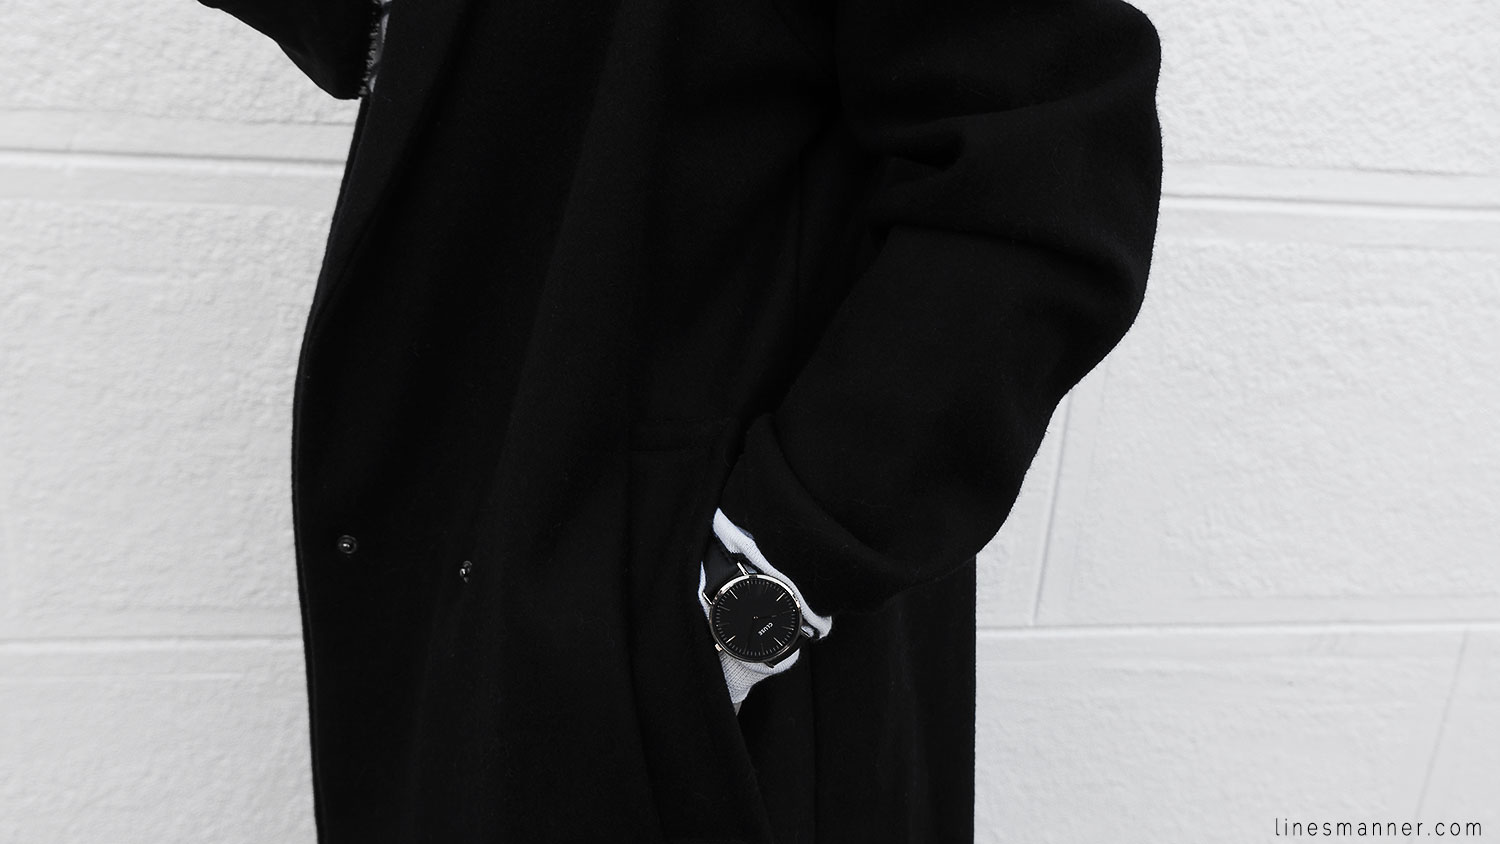 Lines-Manner-Remind-2015-Minimal-Essential-Outfit-Inspiration-Blog-Timeless-Year-Seasons-Details-Travel-Fashion-Versatile-Clean-Sleek-Quality-27